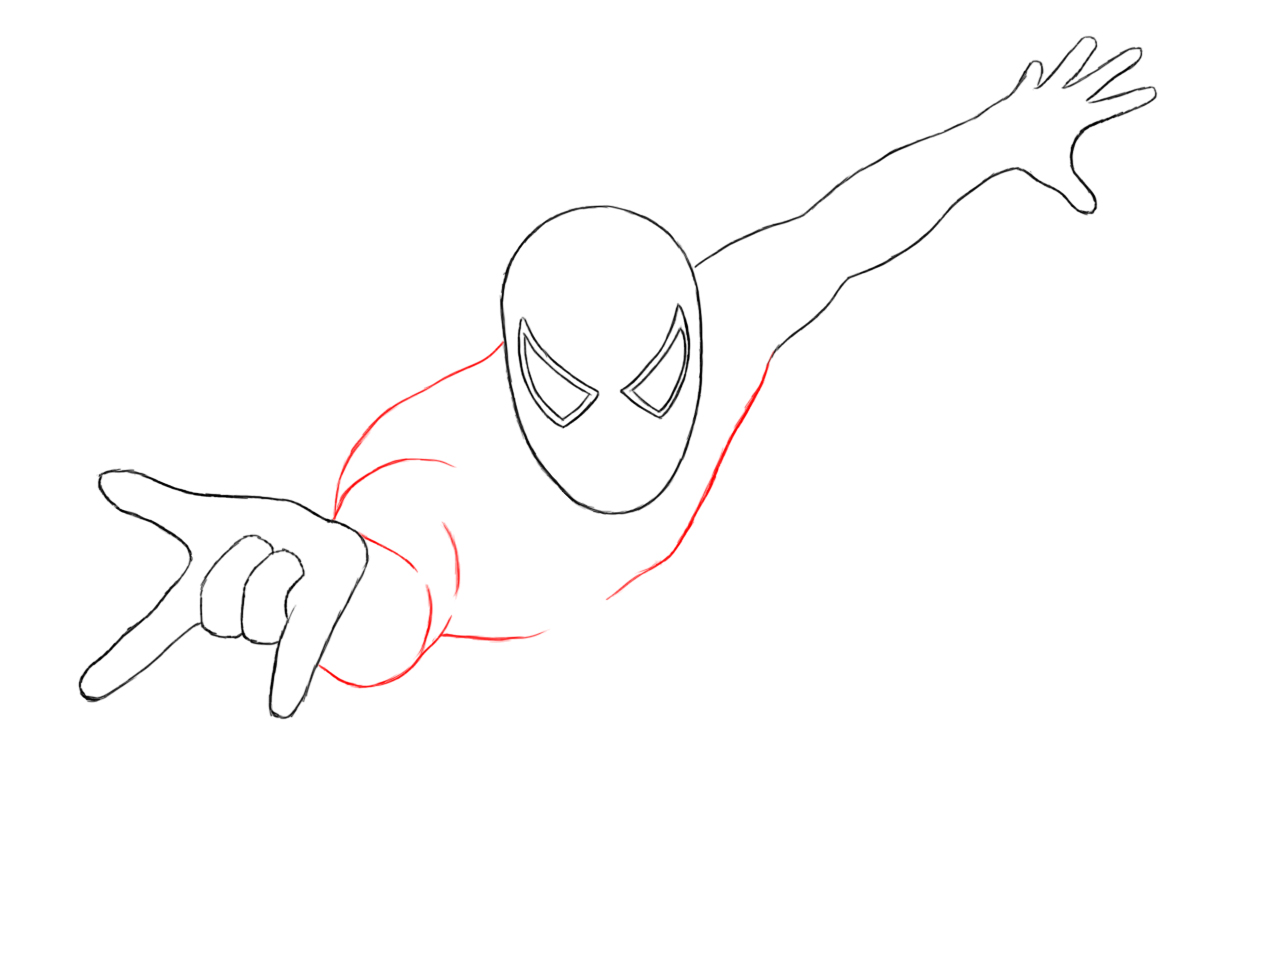 Spiderman Chest Drawing Draw in Spiderman's Chest by